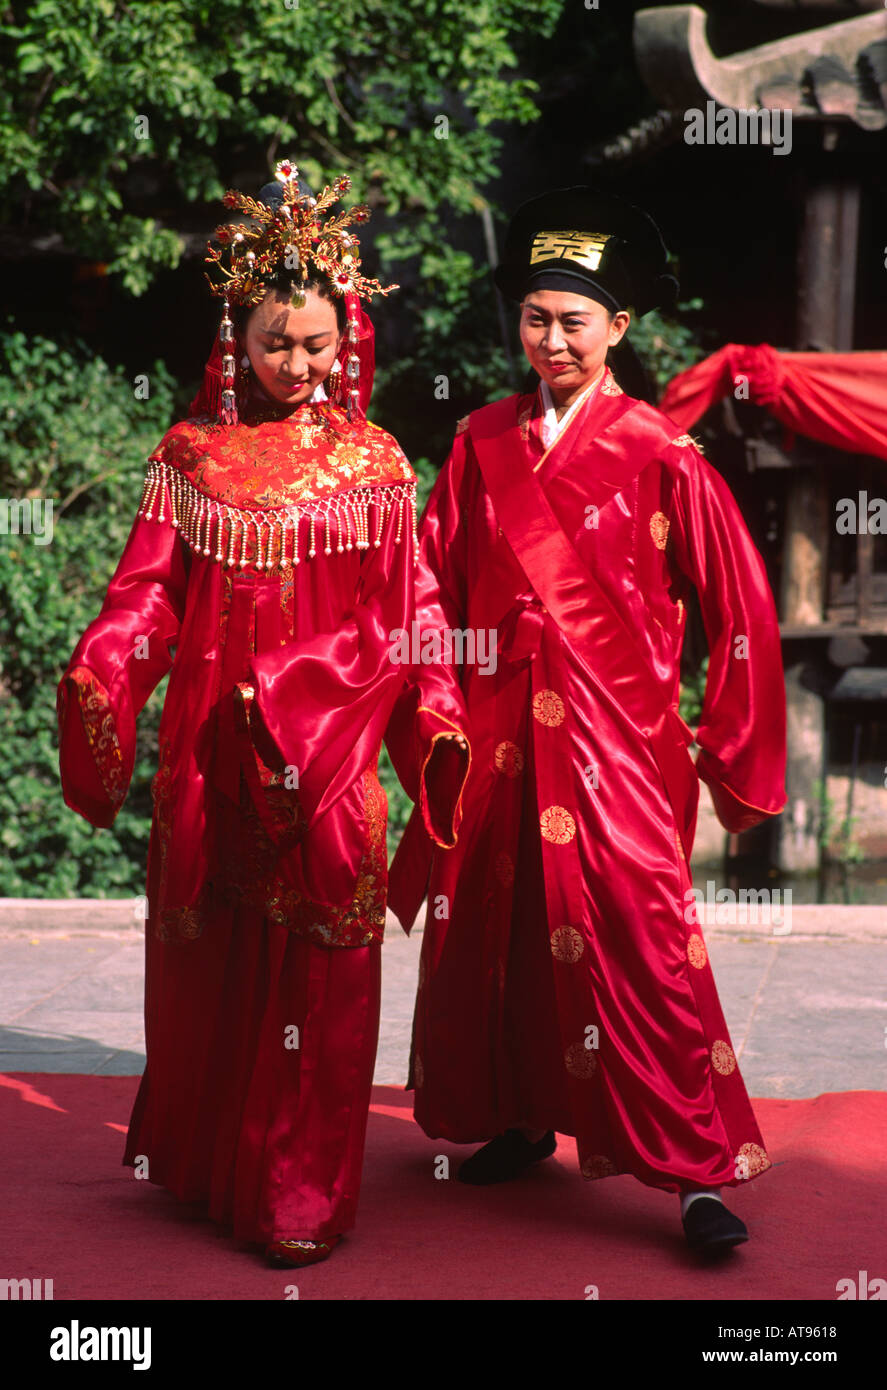 Traditional Chinese Wedding Robes Hong Kong Stock Photo Alamy